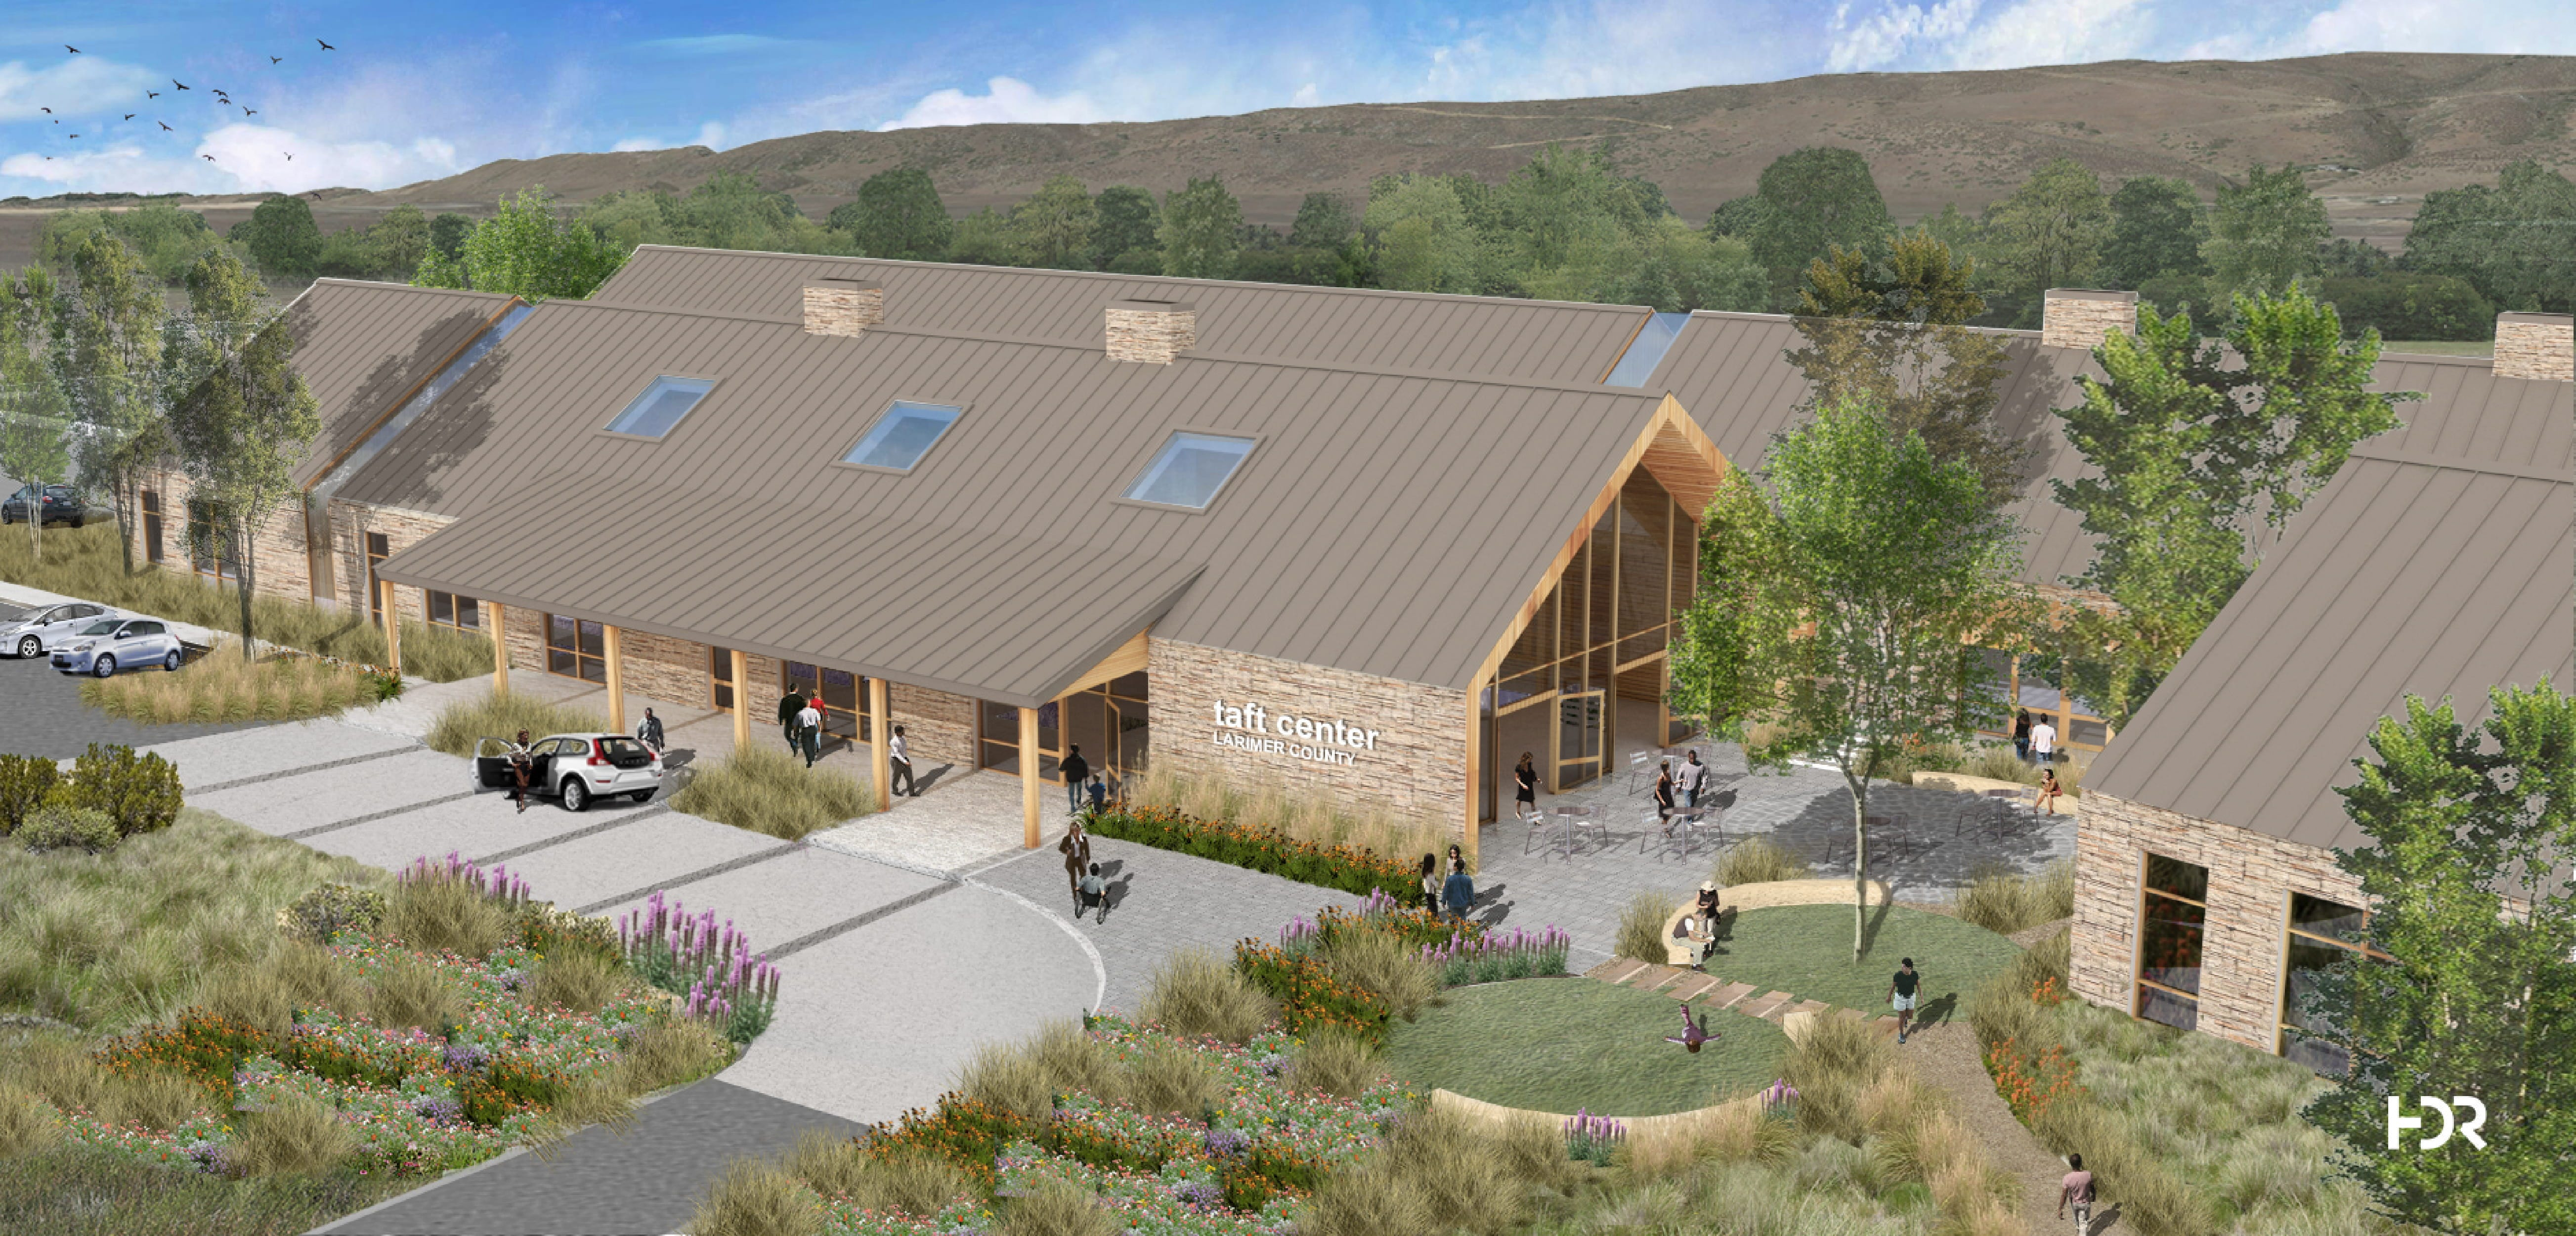 See site of mental health facility proposed in Larimer County Ballot Issue  IA